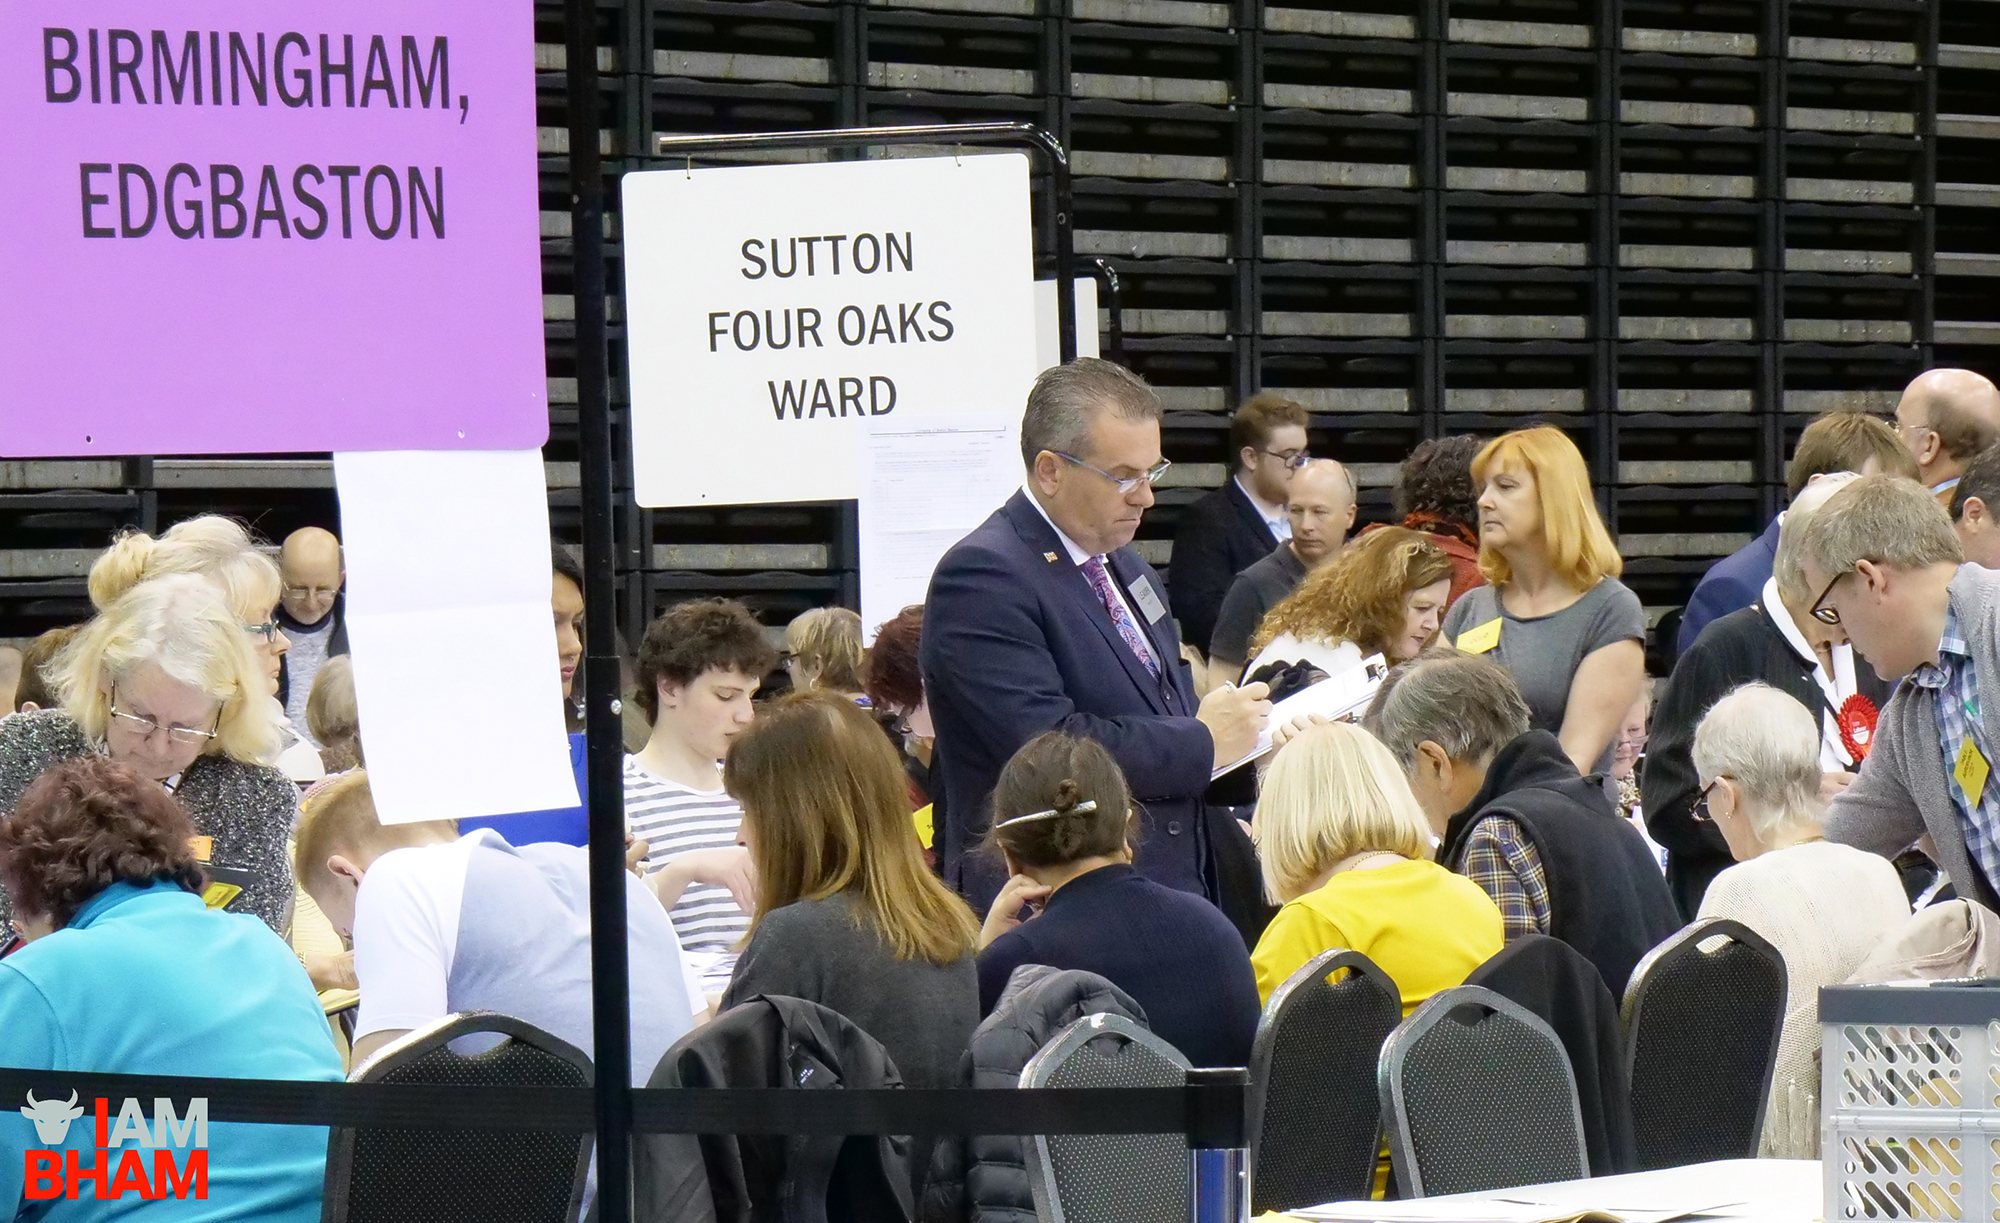 Birmingham City Council leader Cllr John Clancy at the West Midlands Mayoral Election vote count at the Birmingham Barclaycard Arena